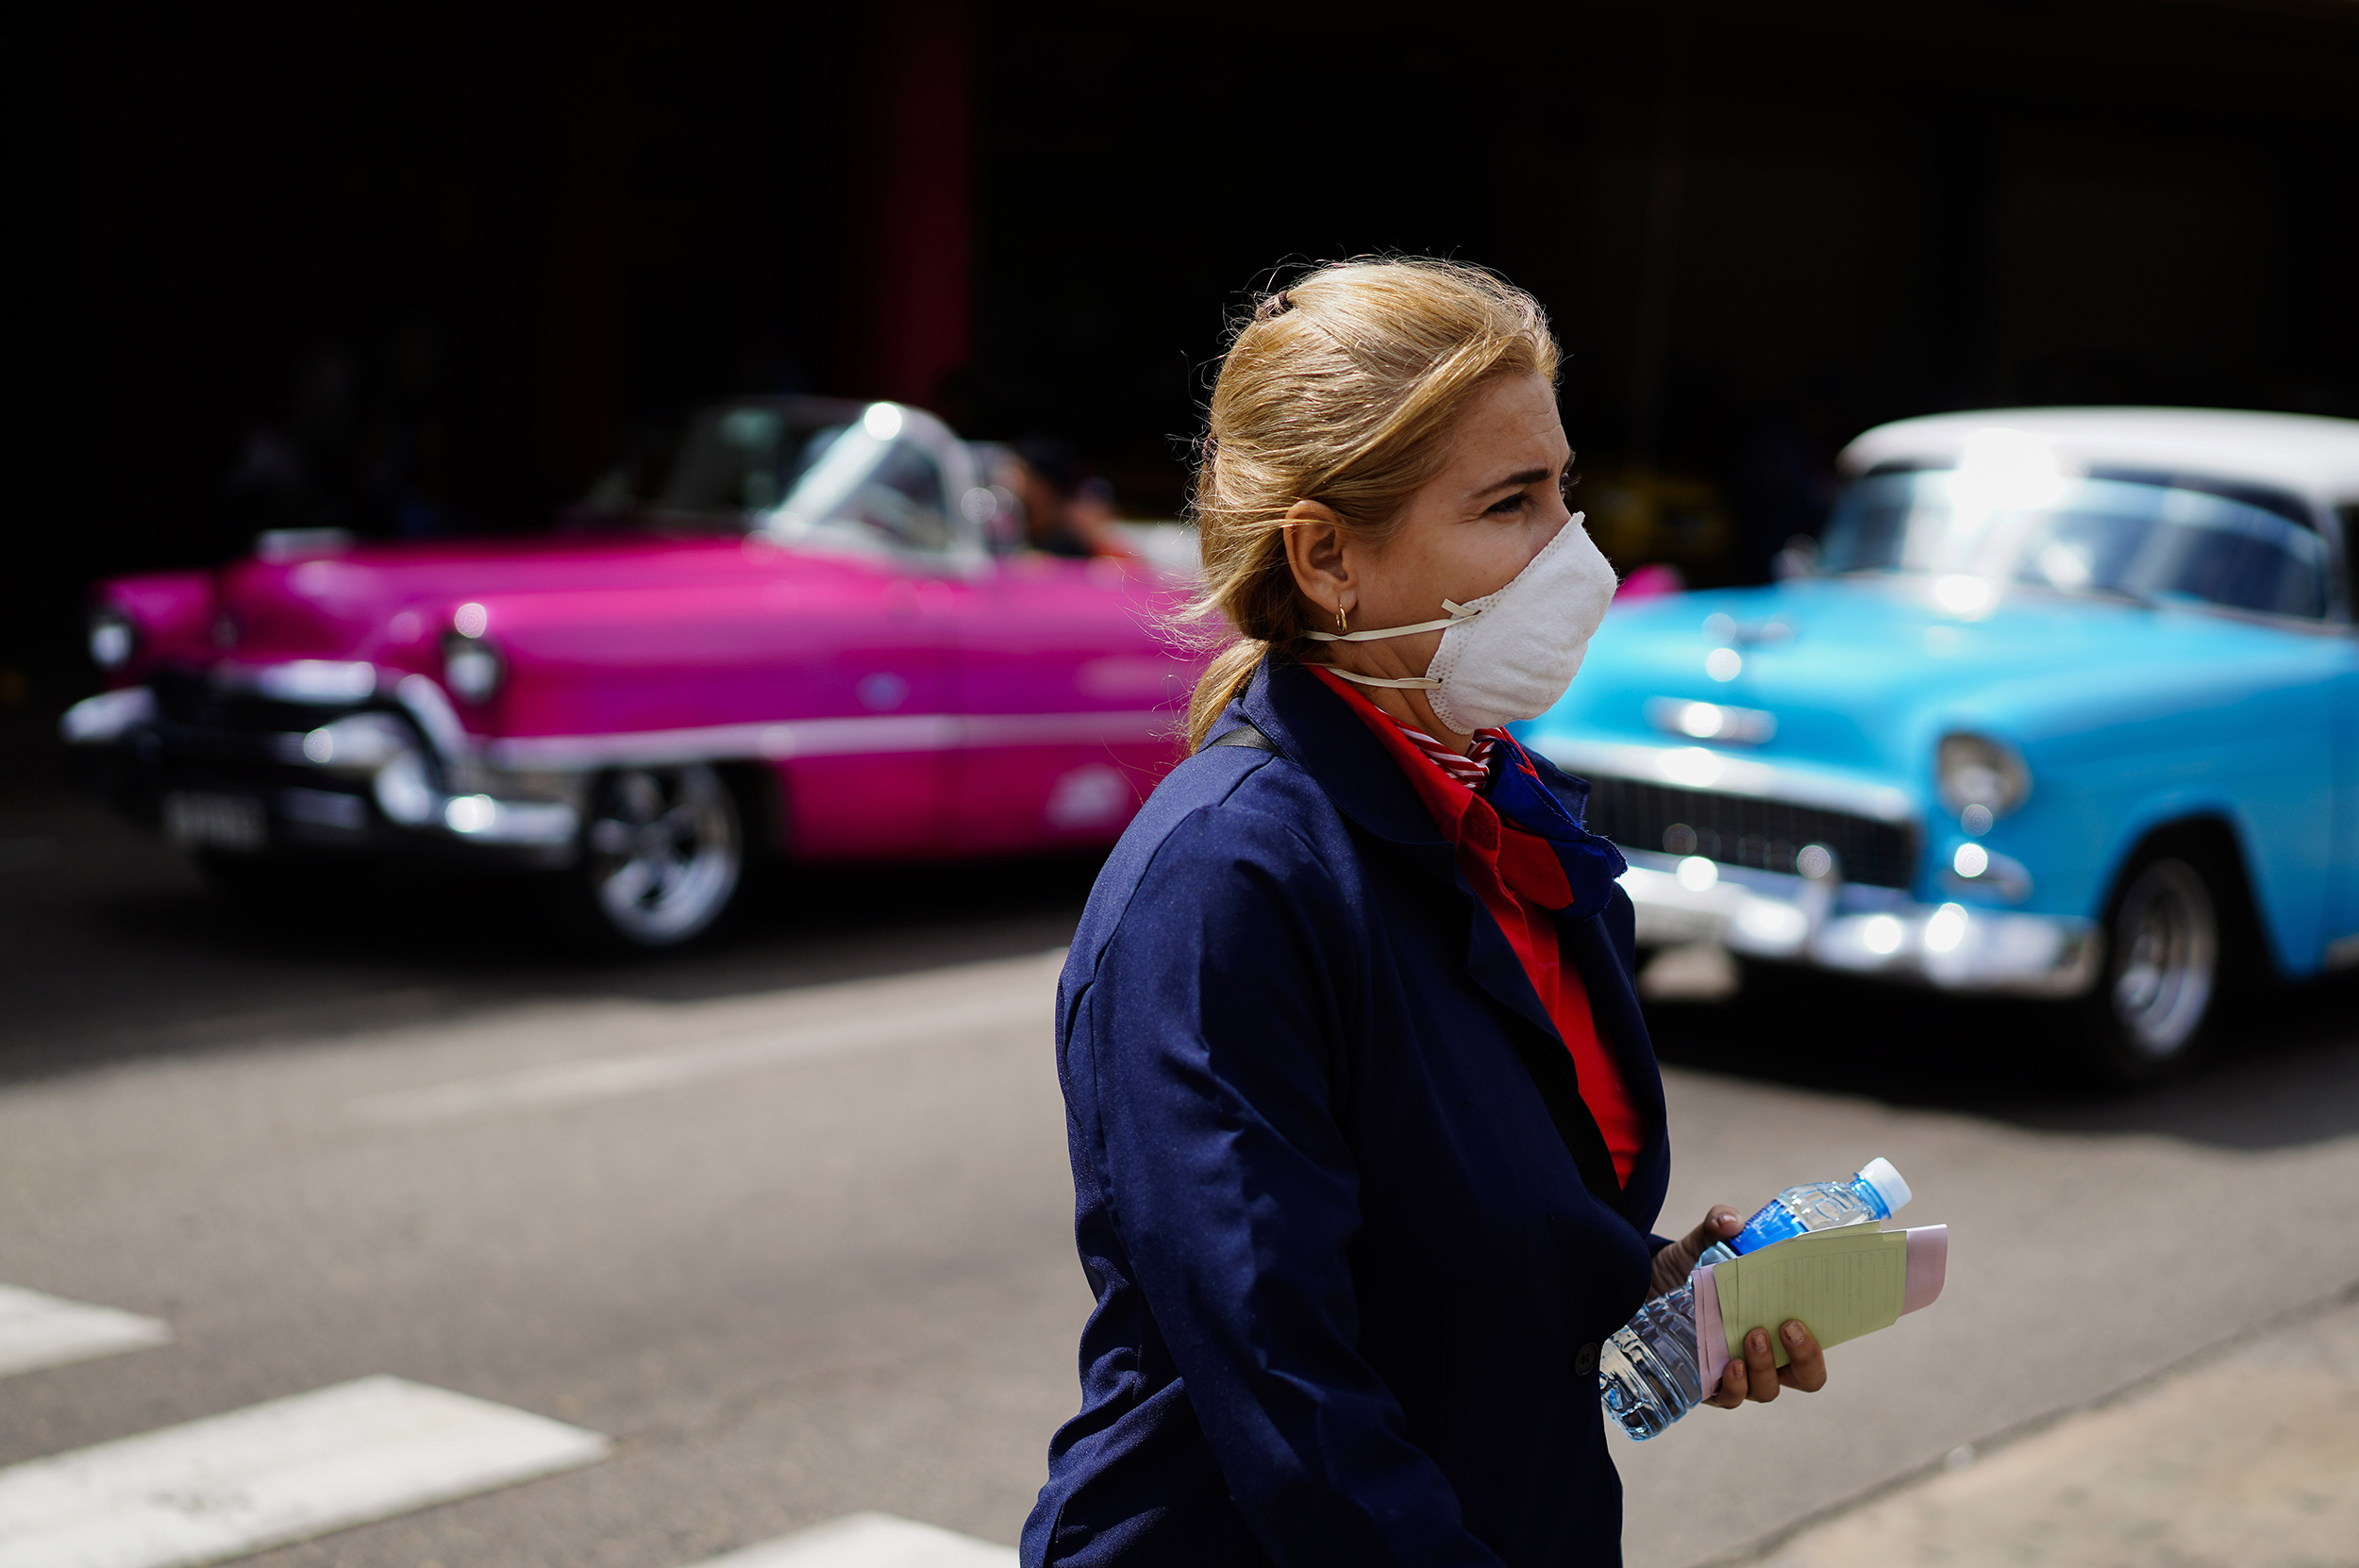 Cuba confirms first coronavirus cases, tells people to make their own masks